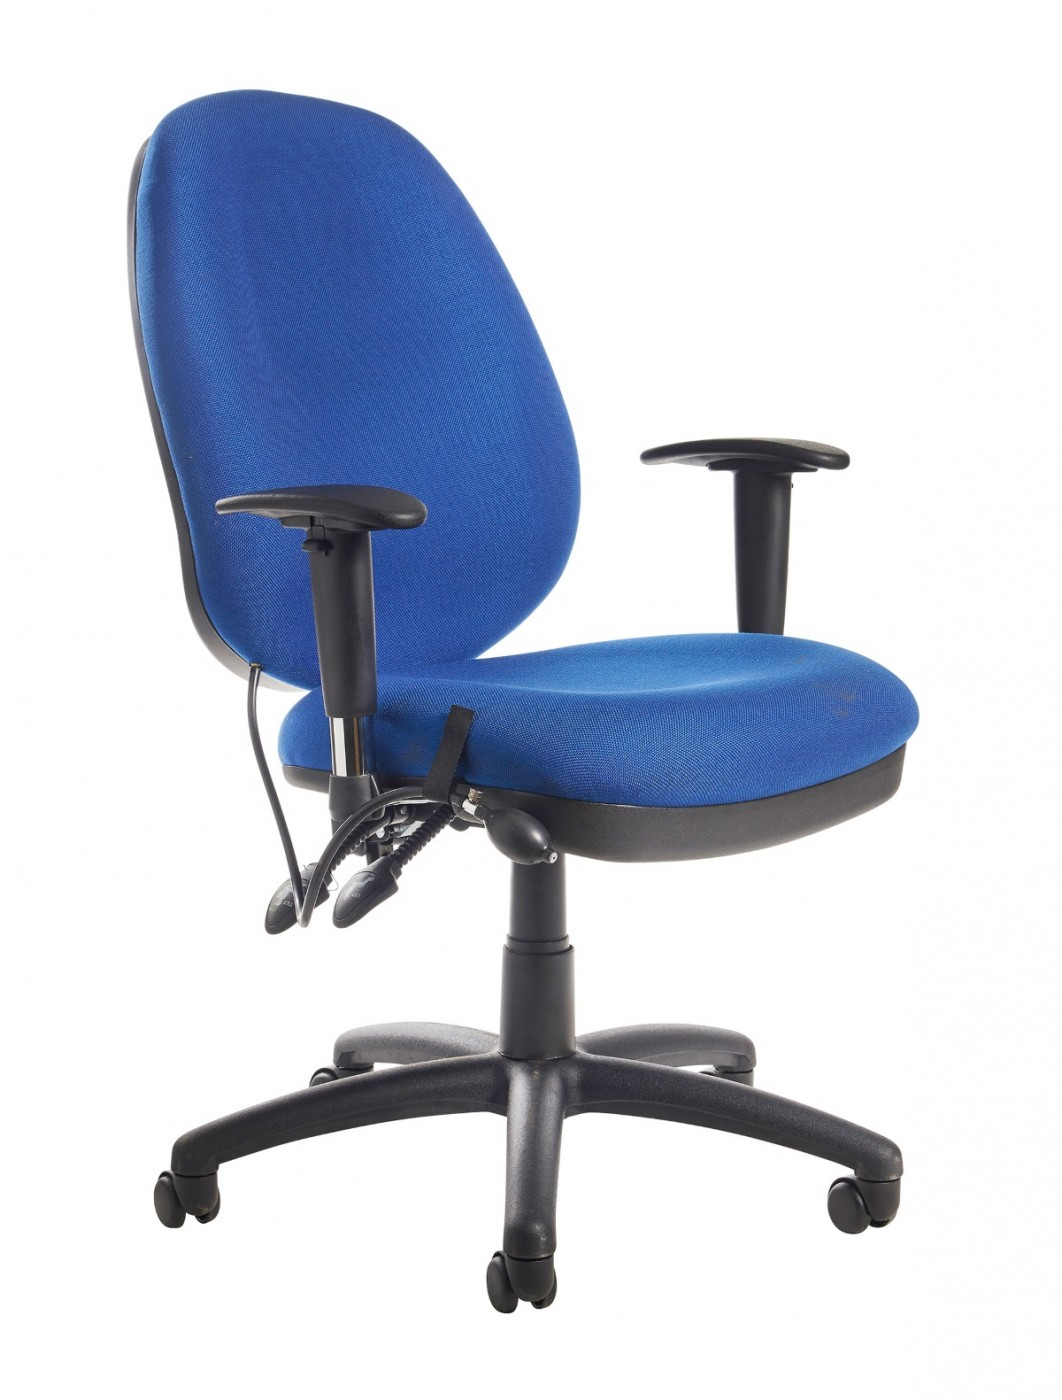 Office Chairs  Sofia Fabric Office Chair SOF300T1 by Dams